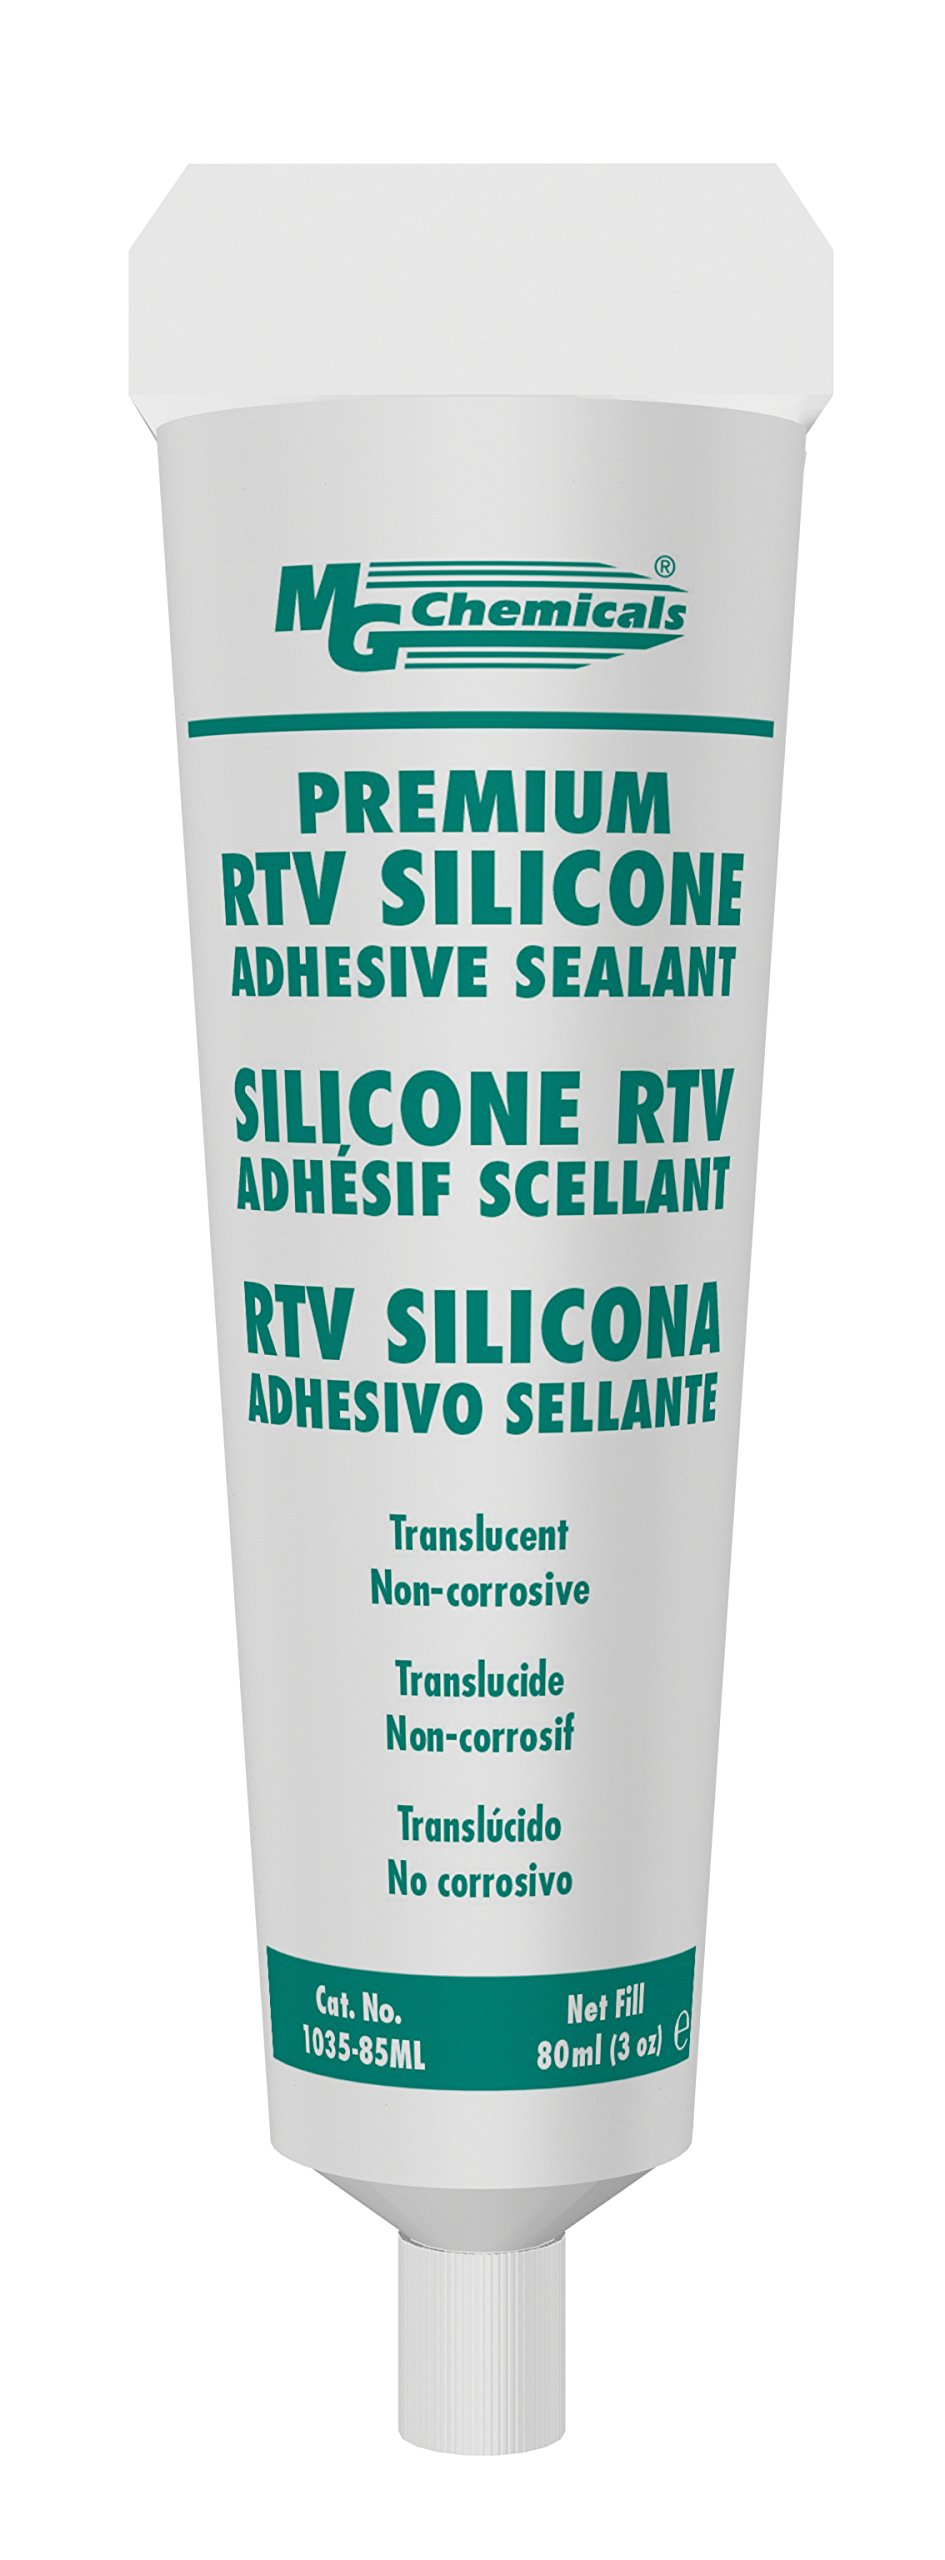 MG Chemicals 1035-80ML Non Corrosive Translucent 1-Part RTV Silicone Adhesive Sealant, 80 ml Tube by MG Chemicals